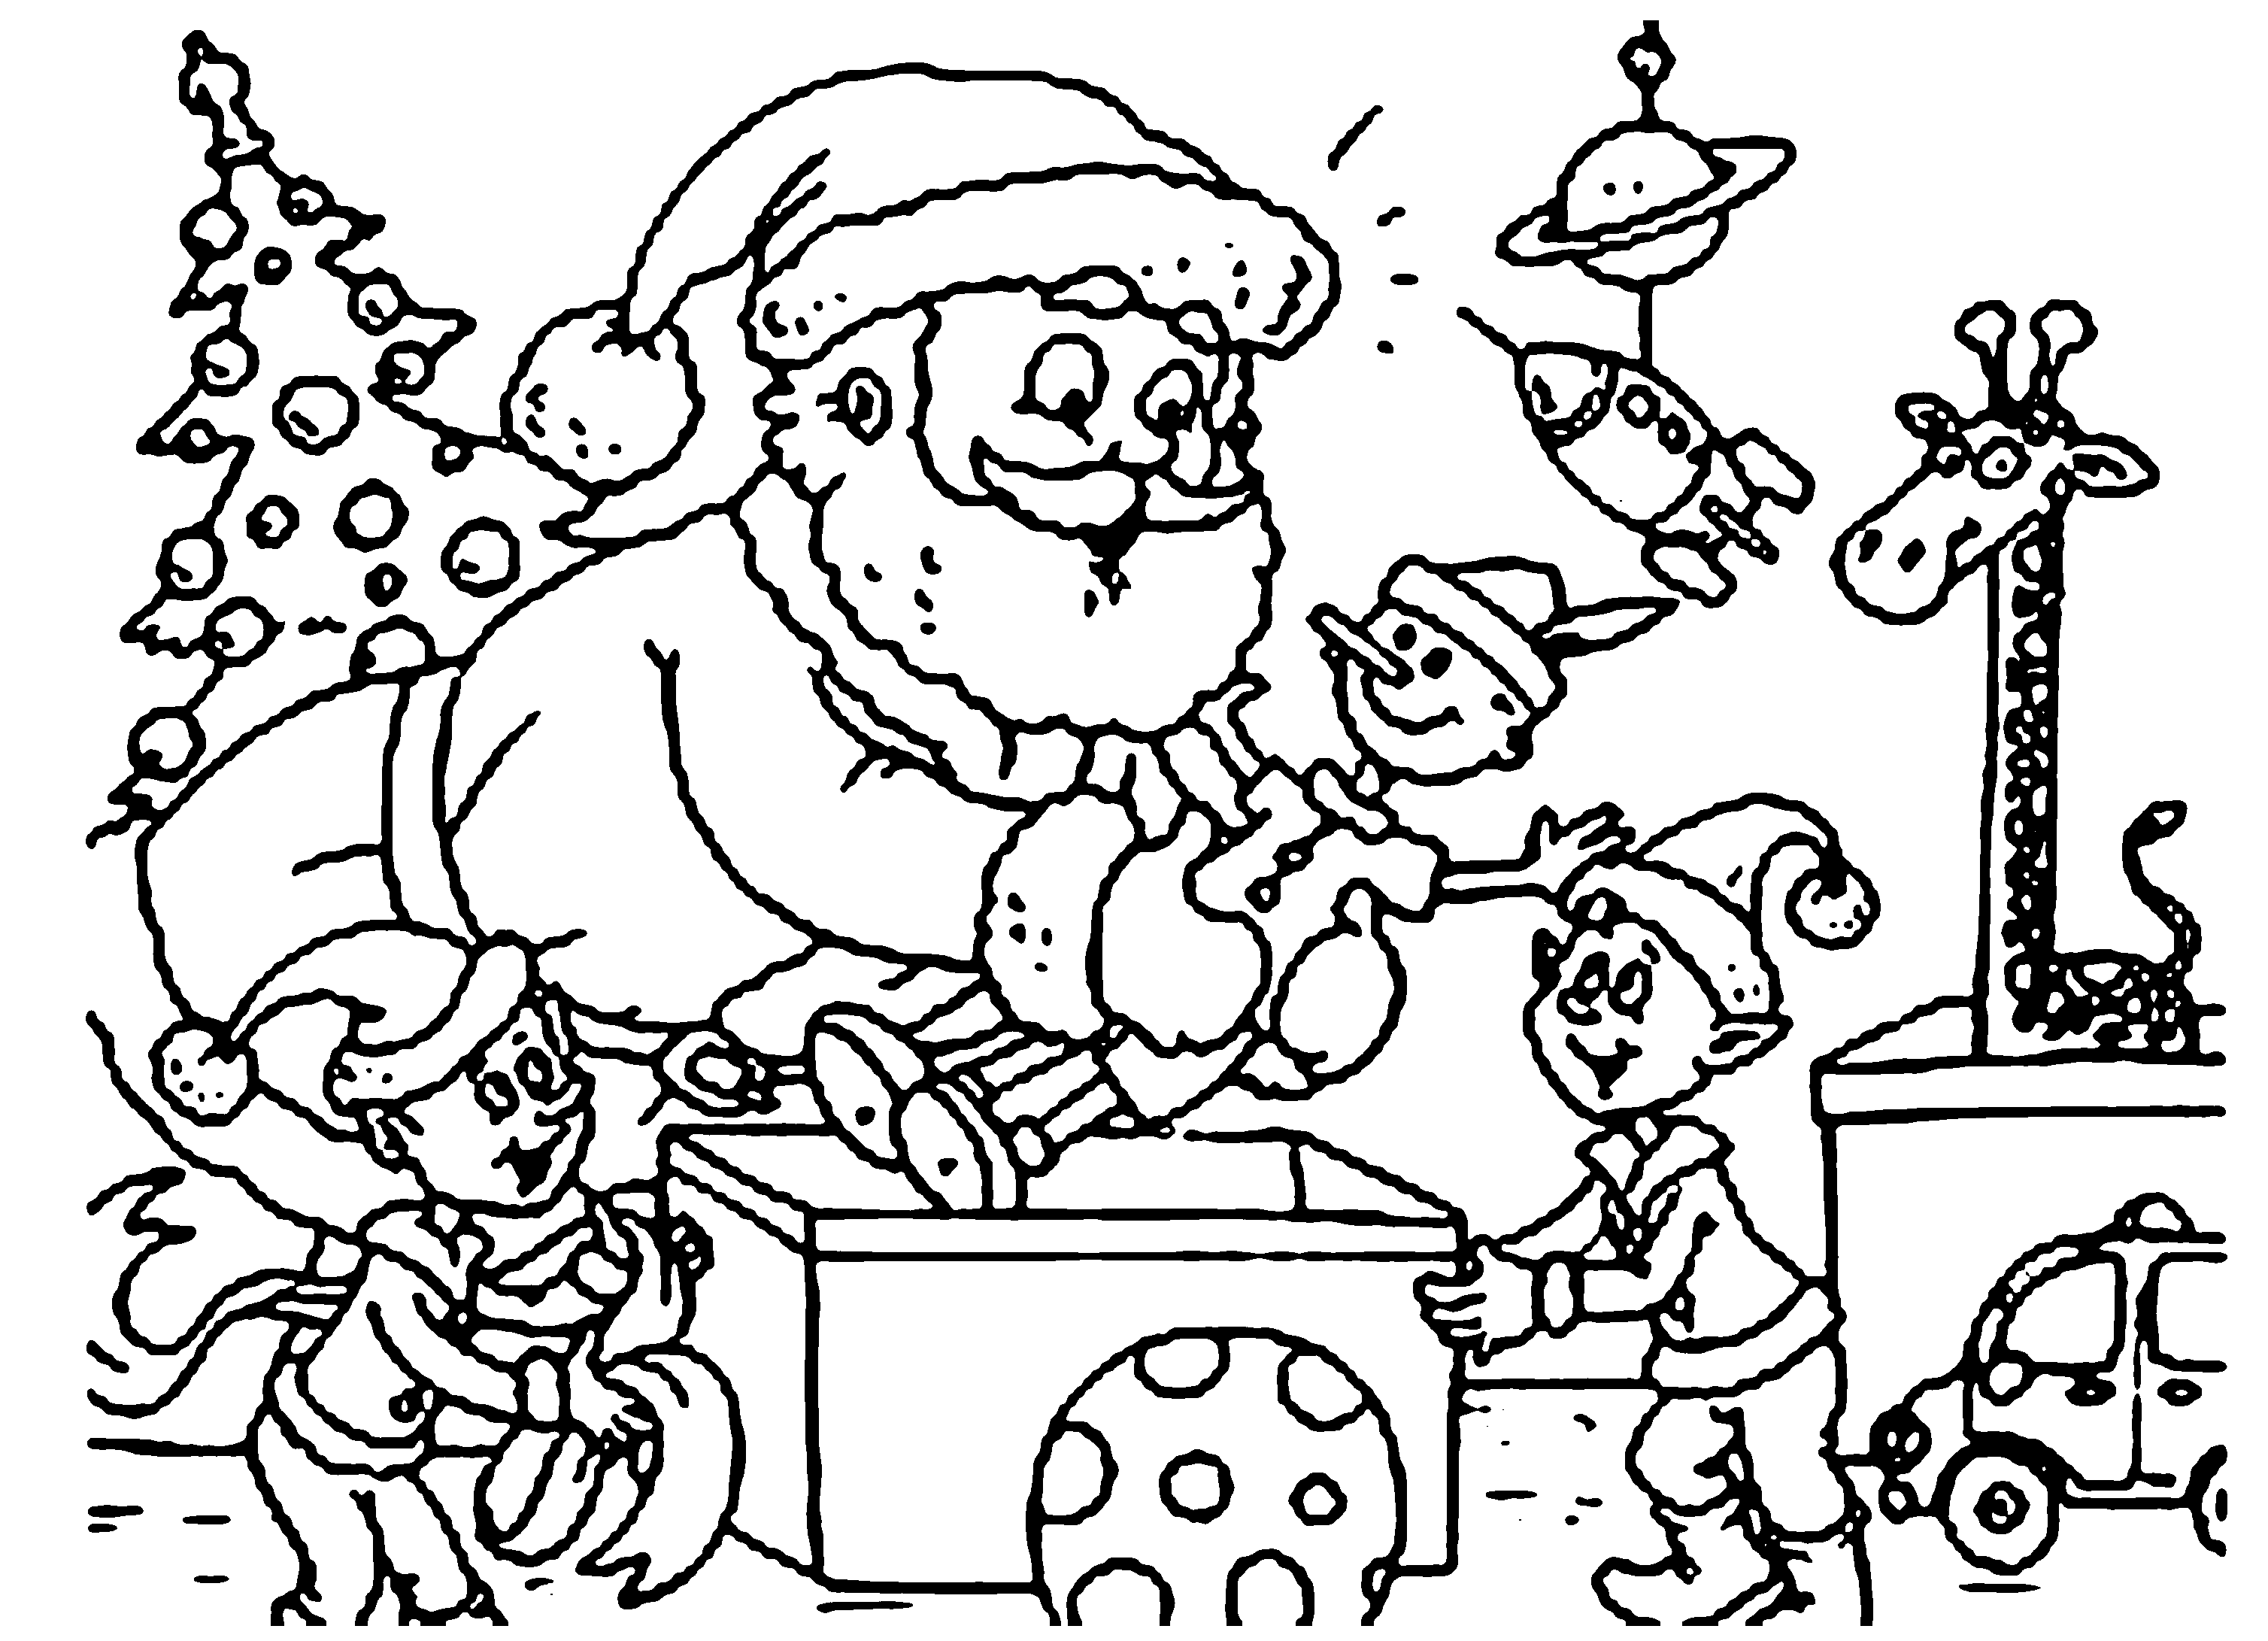 elf on shelf coloring pages - elf on the shelf coloring pages free coloring home